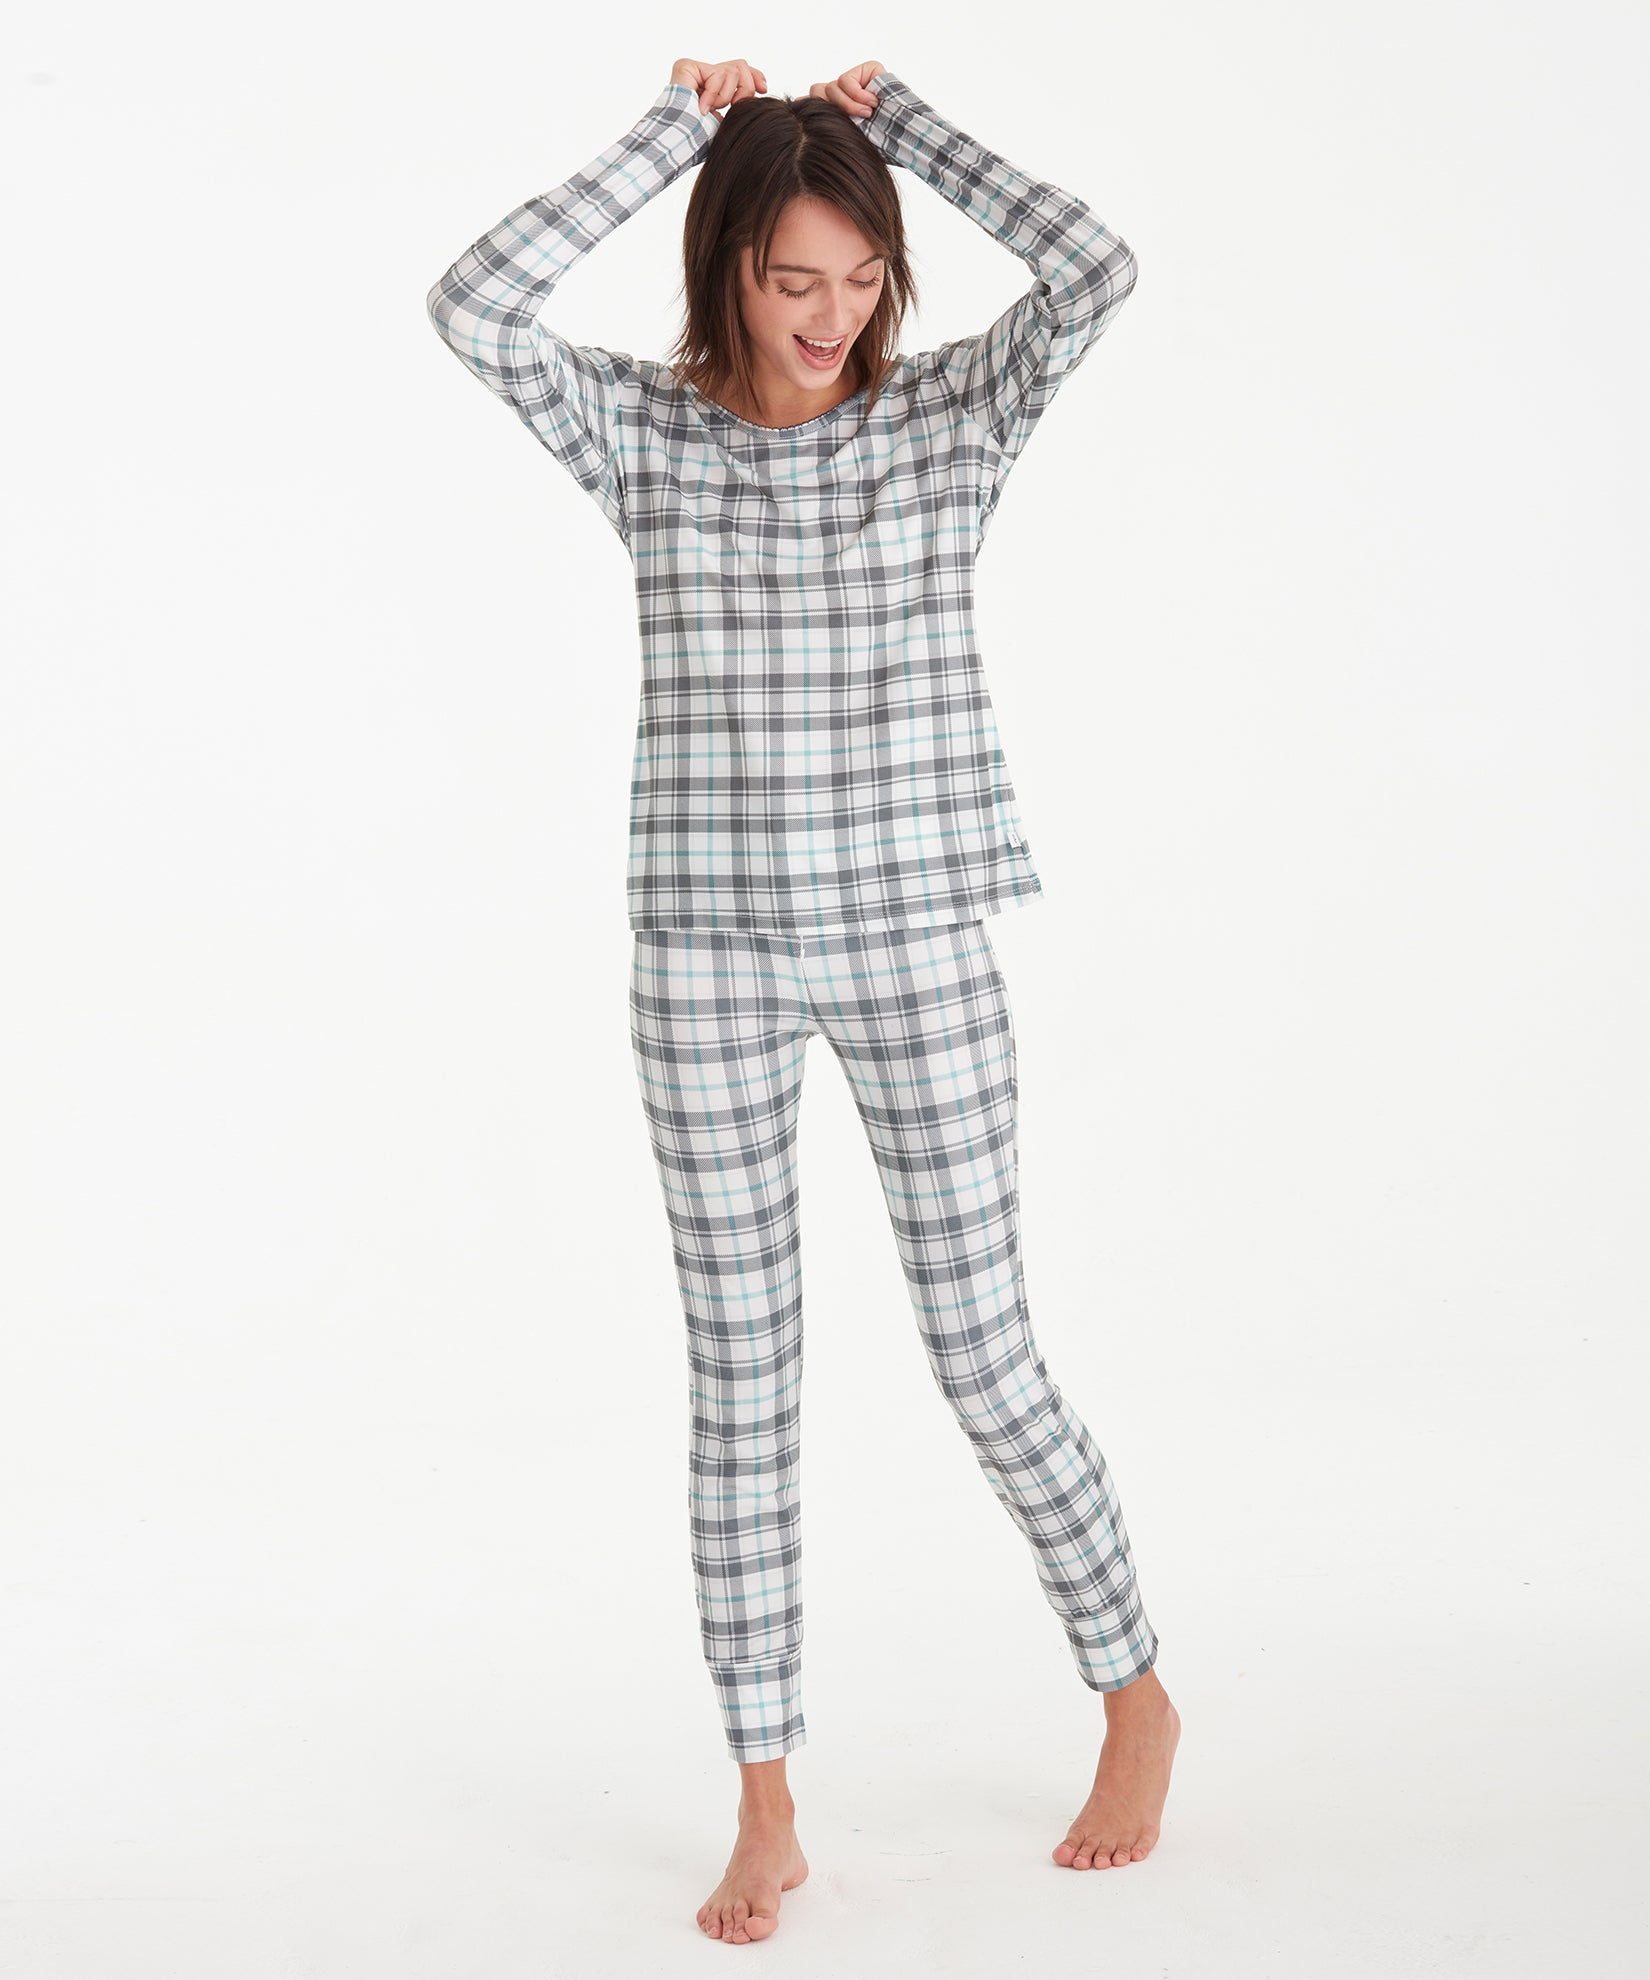 Stowe Plaid - Stowe Plaid L/S Scoop Neck Tee & Legging Set